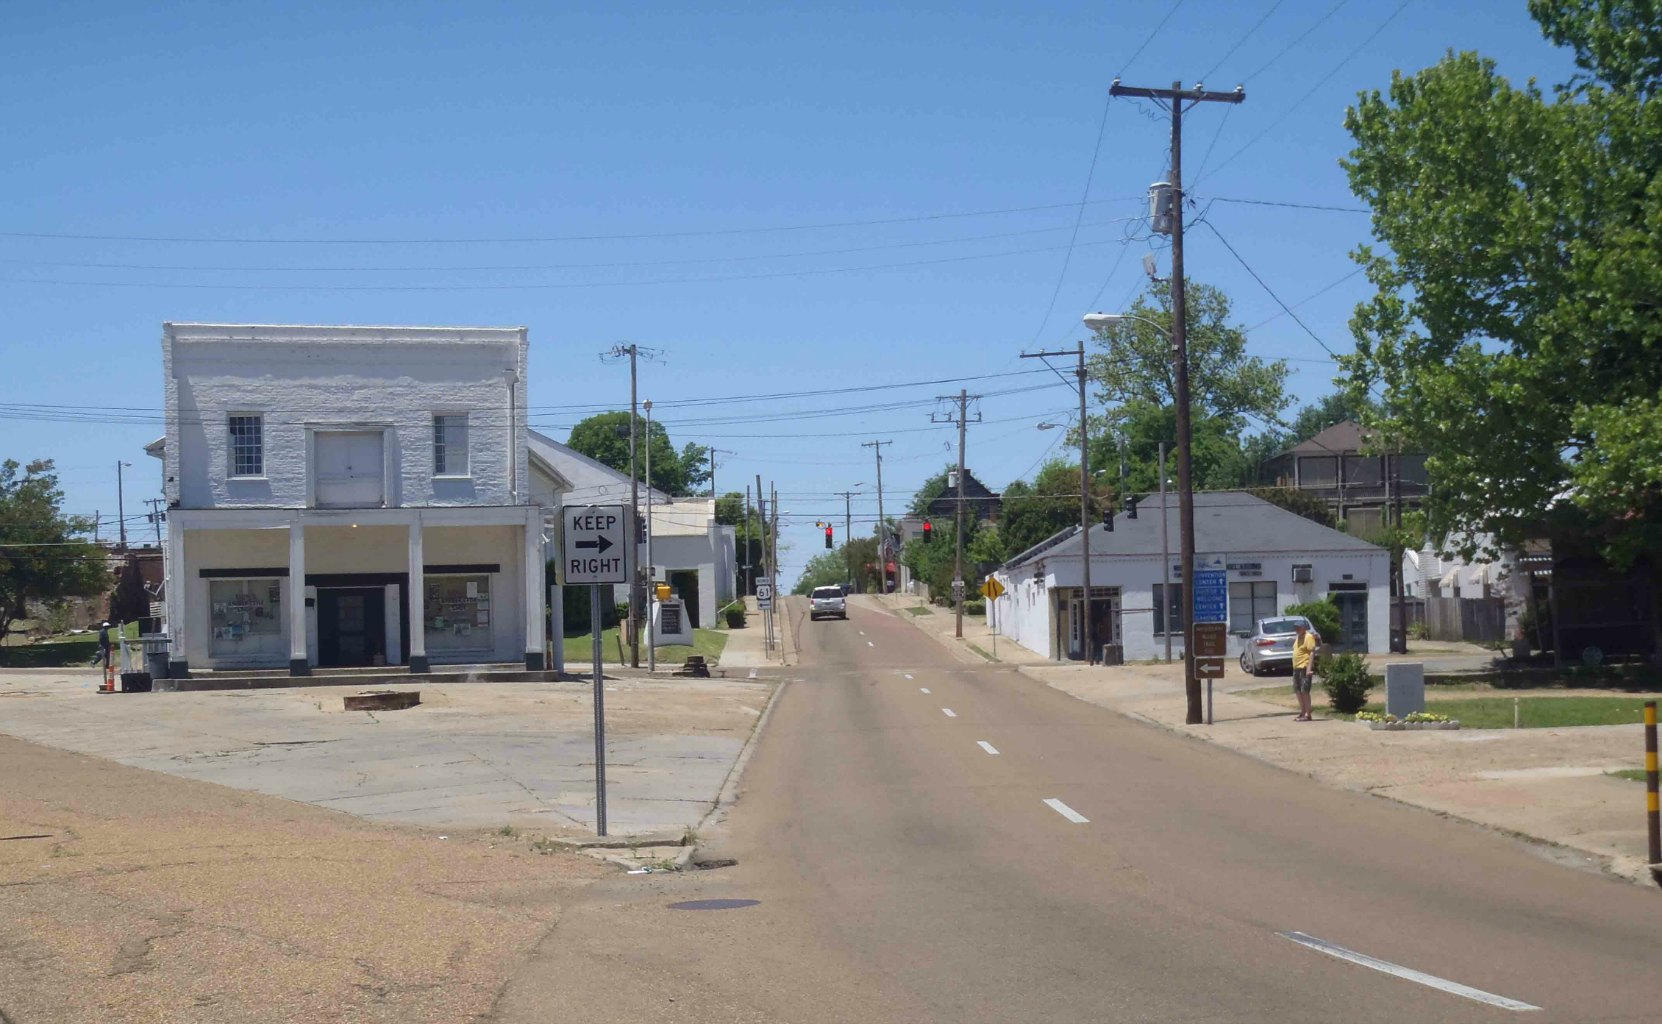 Street view at the site of the Rhythm Night Club Fire, Natchez, Mississippi